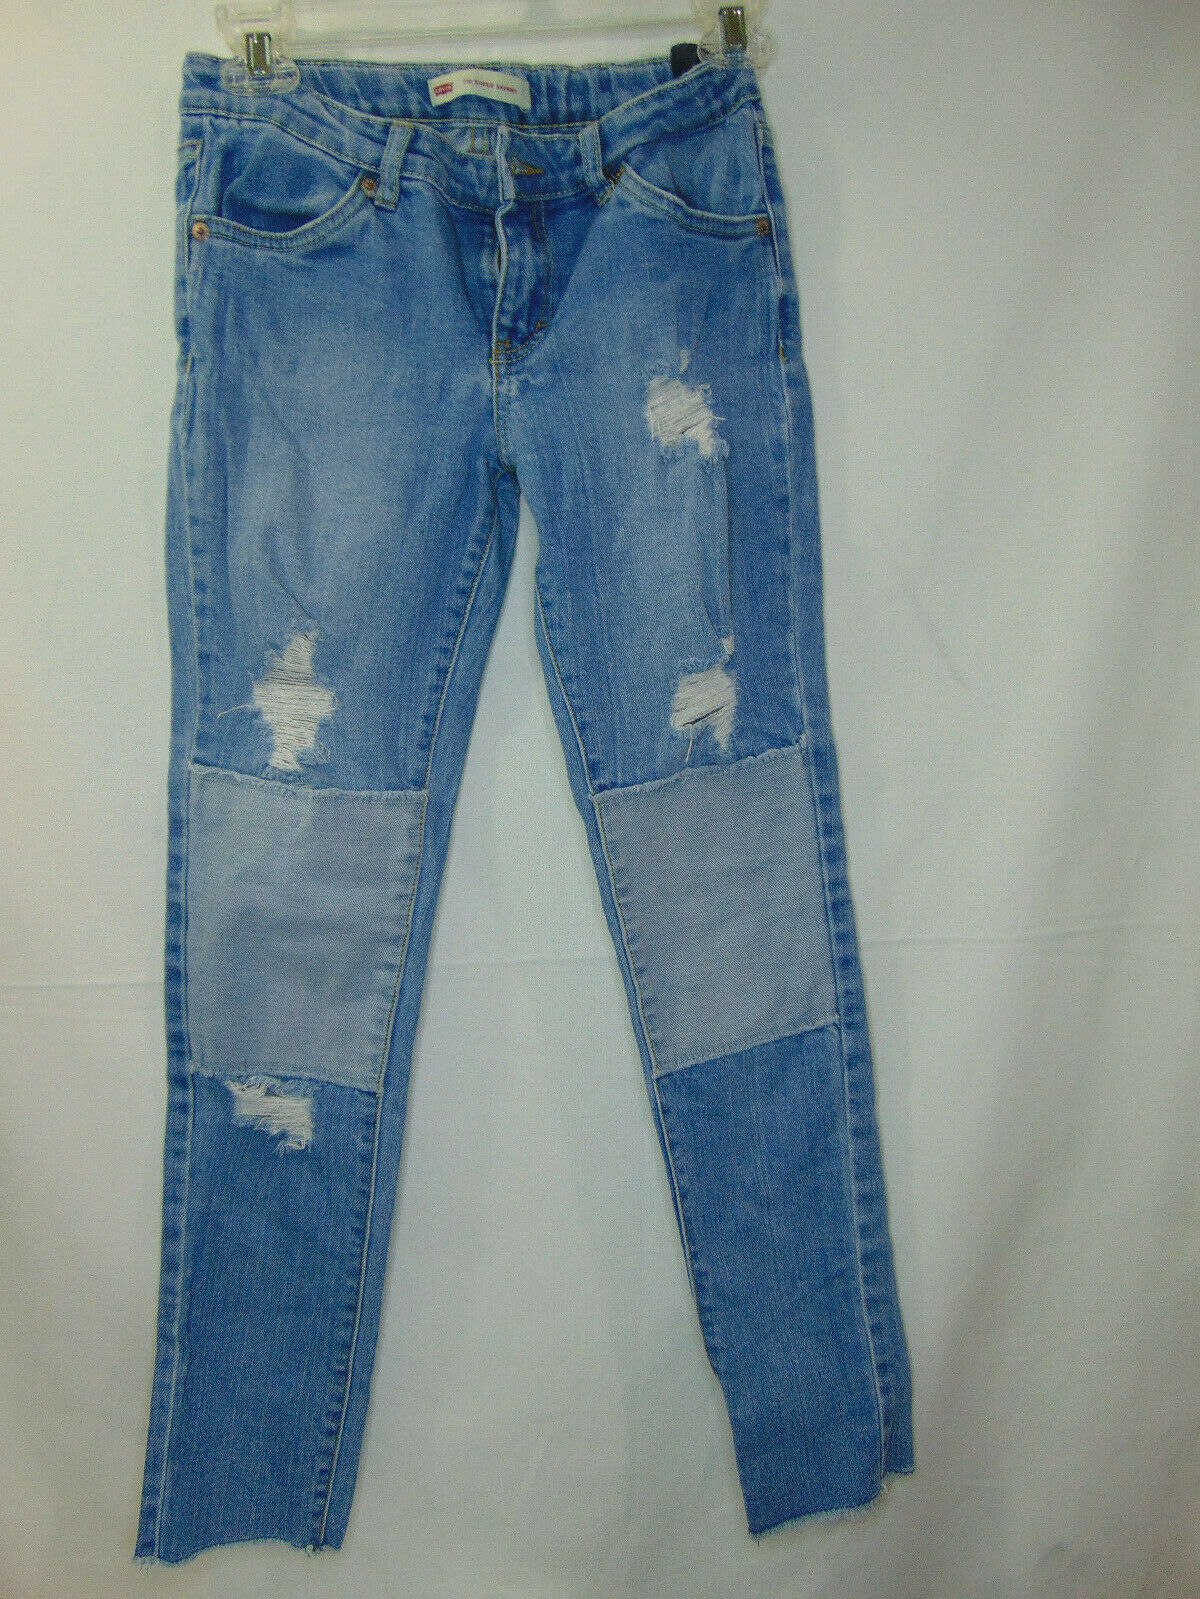 Primary image for Girls Levi's Size 14 Jeans Super Skinny Blue Denim Stretch